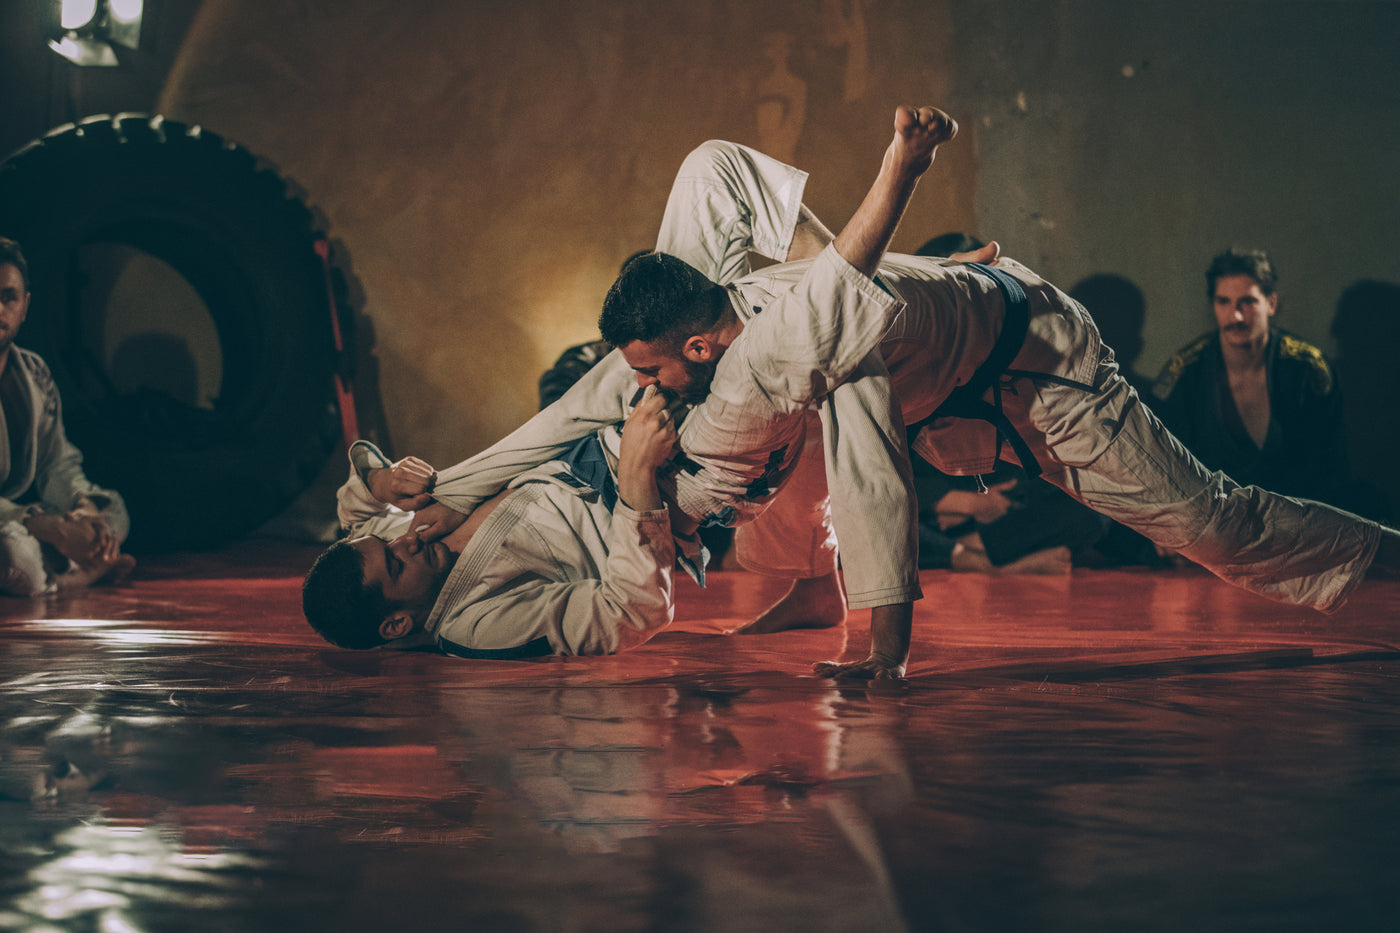 An image of two men practicing jiu jitsu on a red mat.